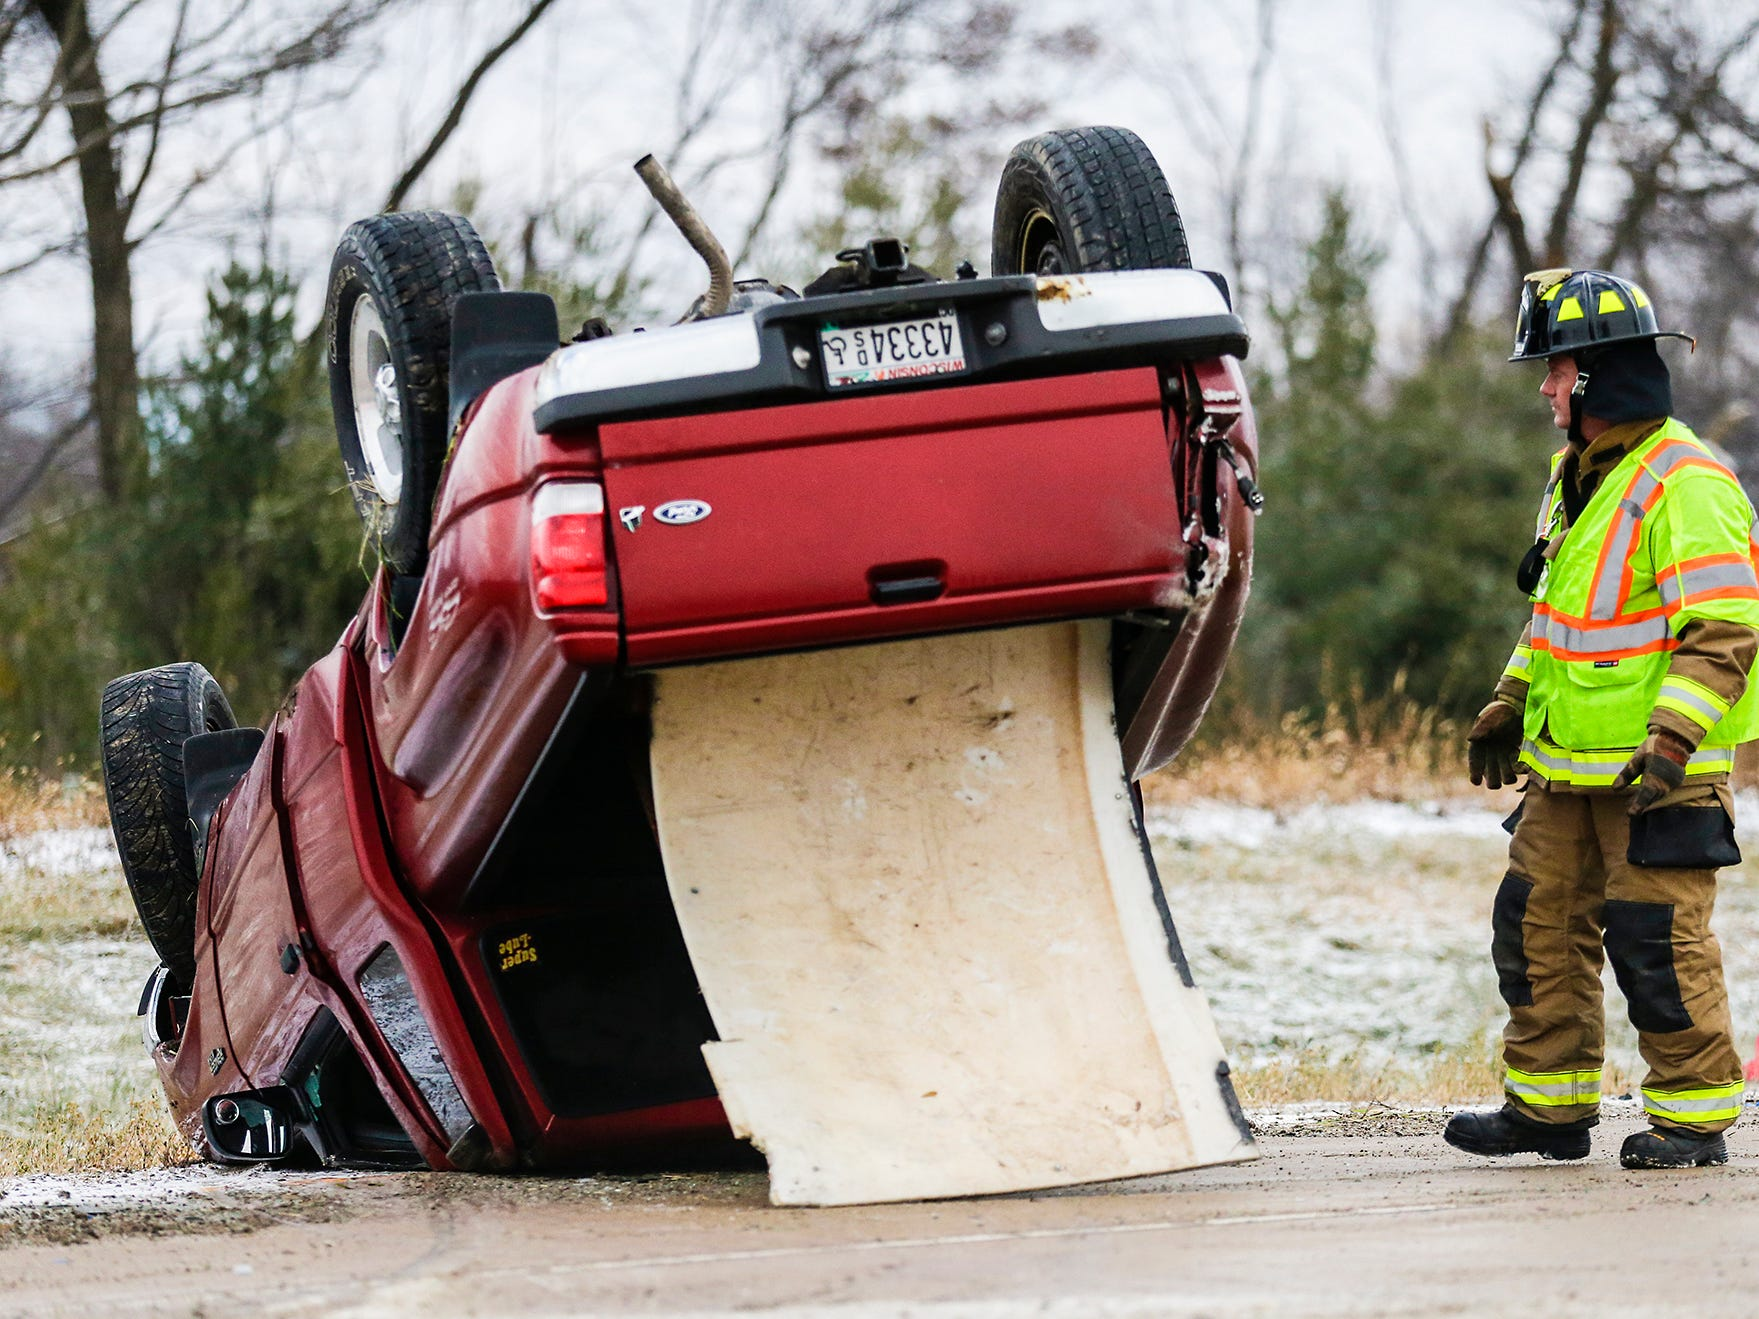 A Waupun firefighter looks over a pick-up truck that crashed Saturday, November 17, 2018 on State Highway 151 near County AS. One person was injured in the crash. Doug Raflik/USA TODAY NETWORK-Wisconsin